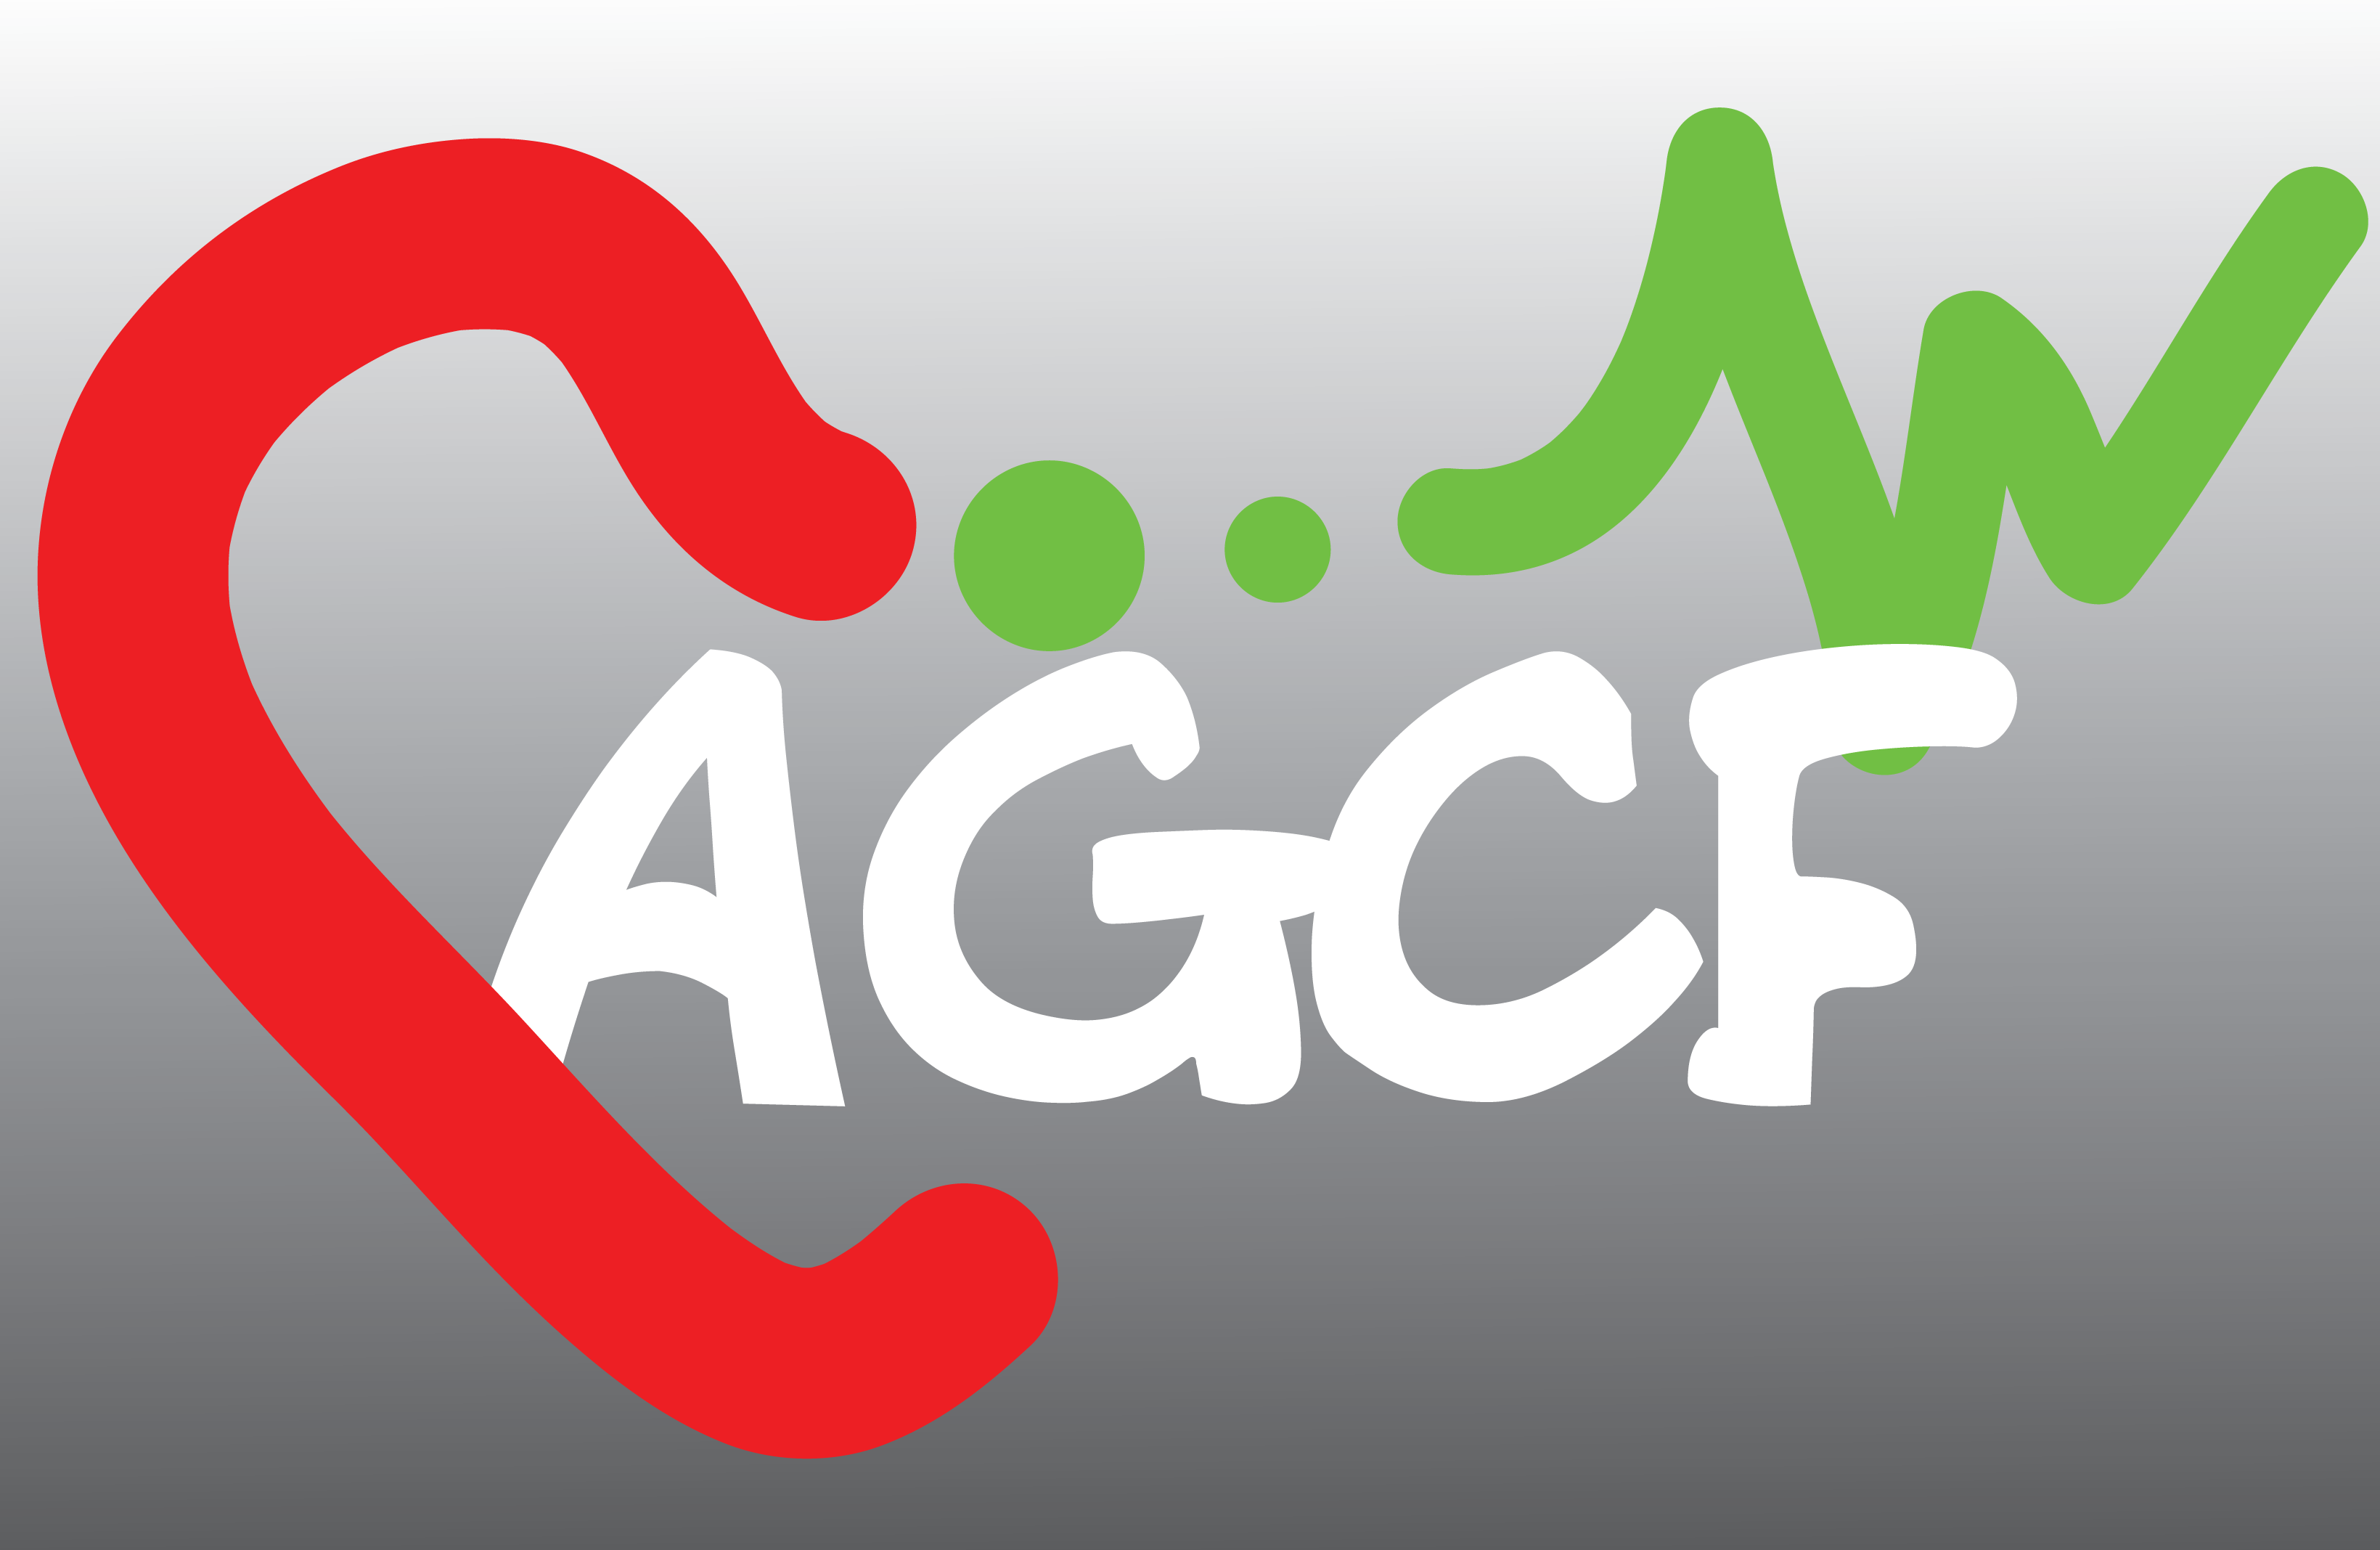 Logo Design by Safal Adam - Entry No. 167 in the Logo Design Contest Imaginative Logo Design for AGCF.